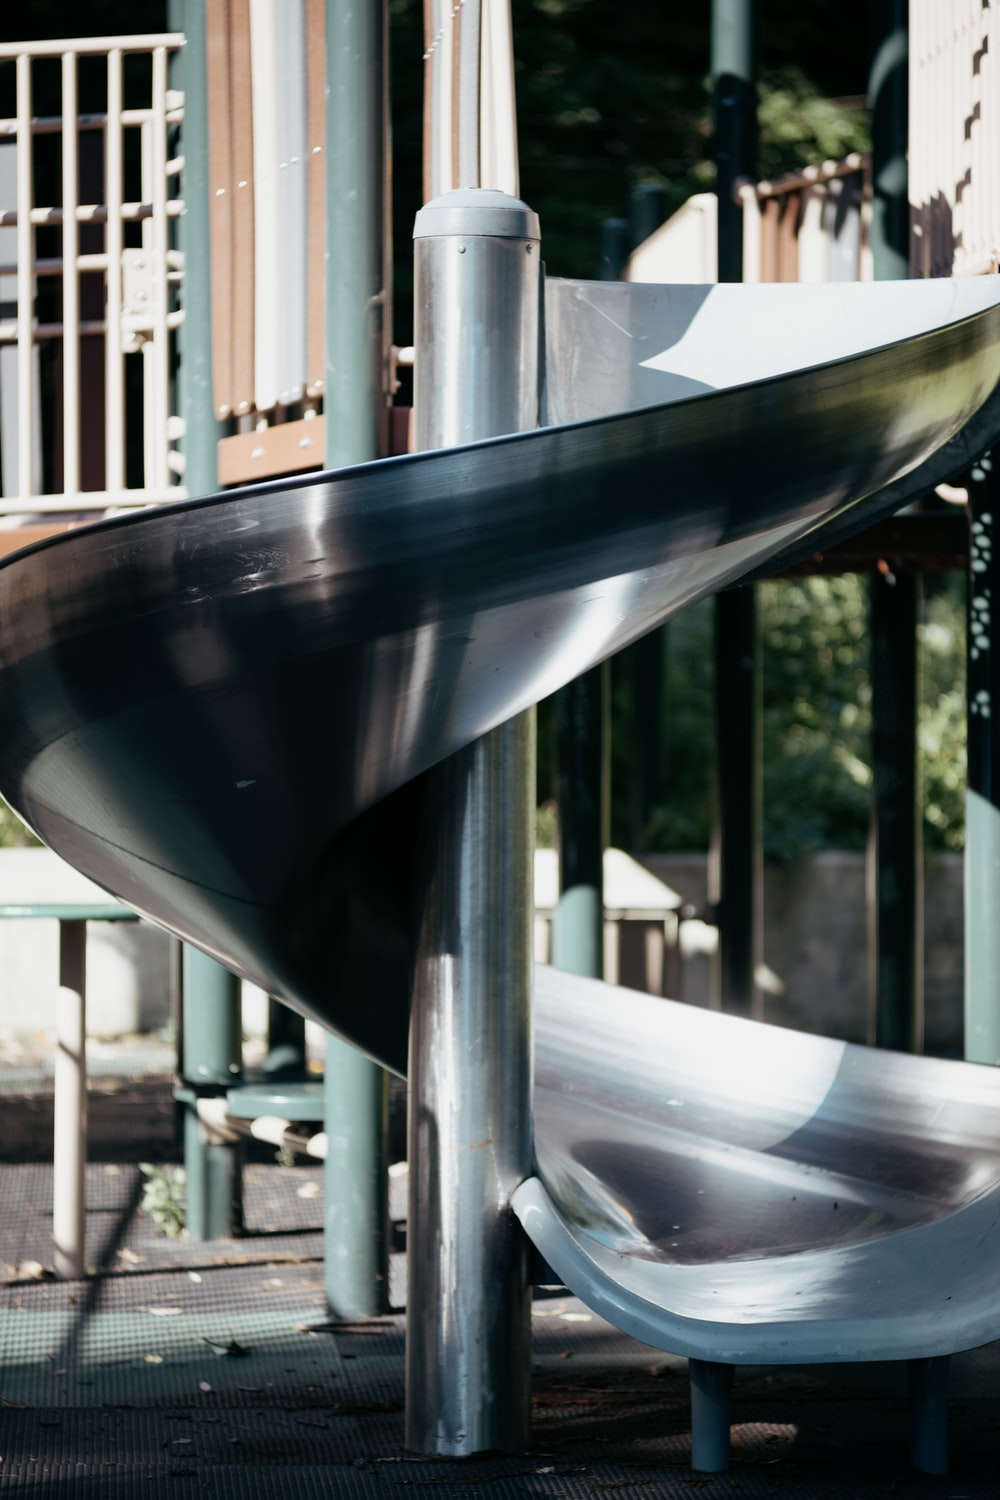 stainless steel railings near green trees during daytime